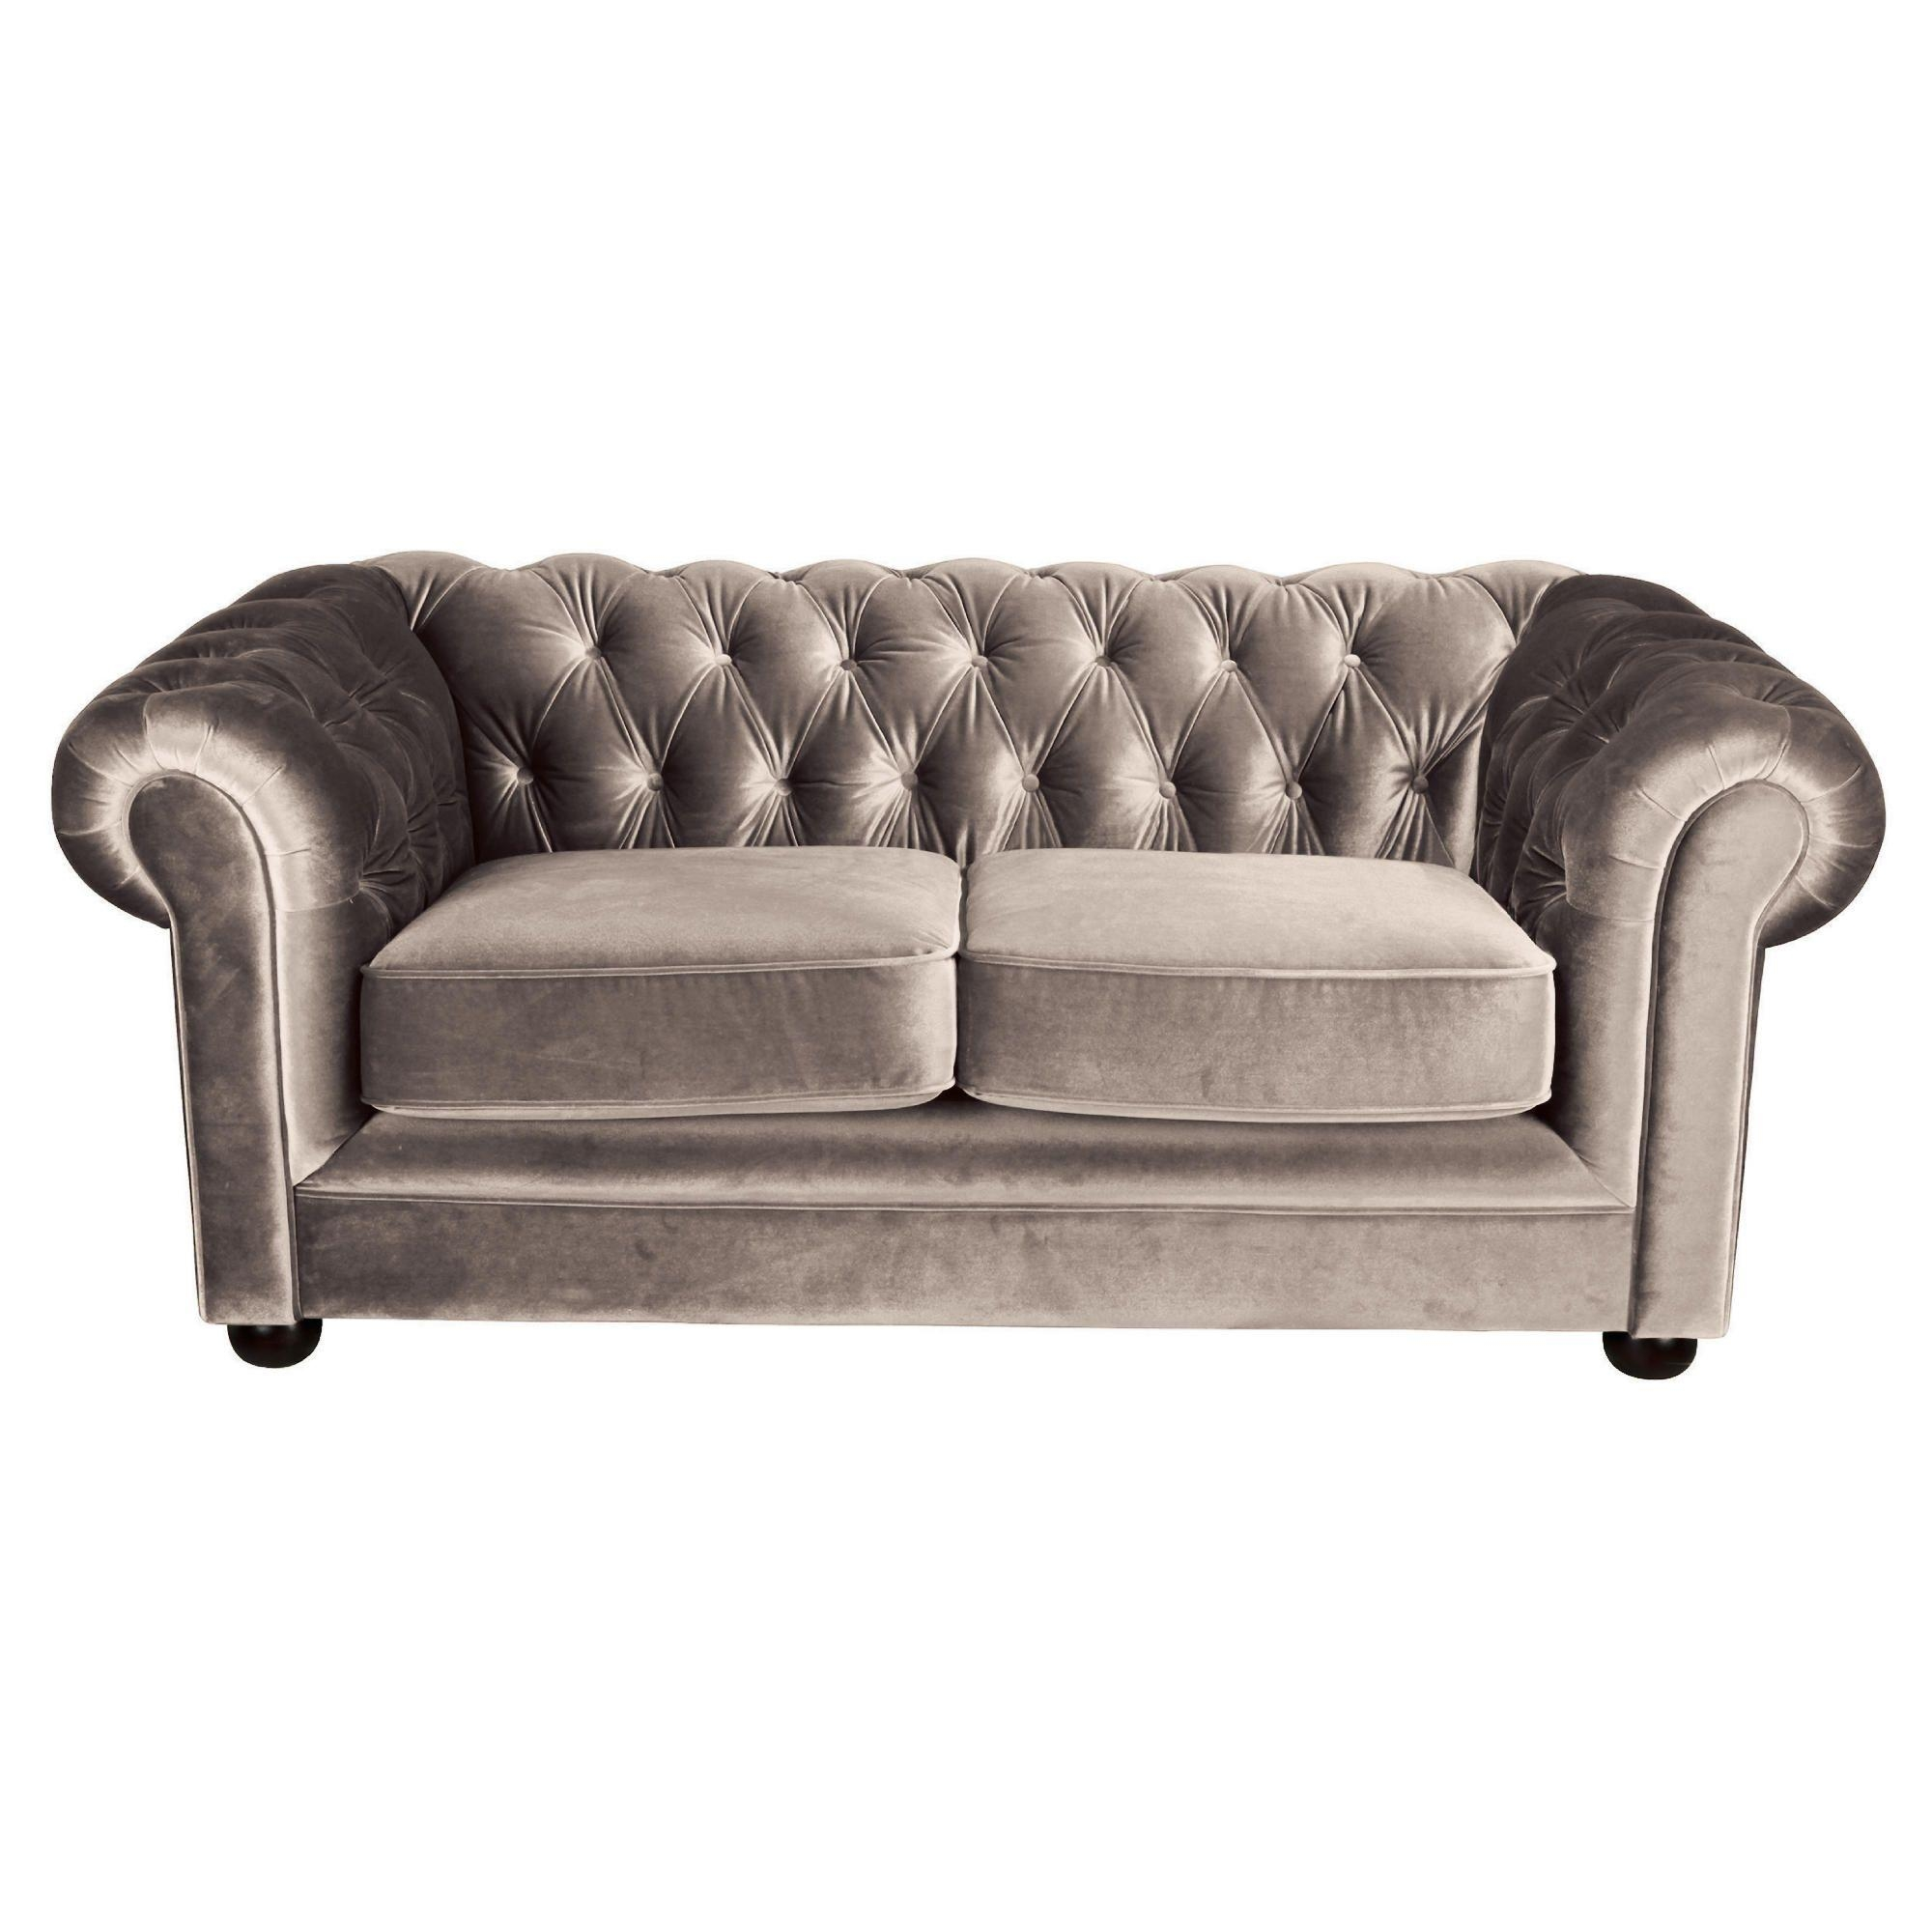 Storage Oxblood Leather Chesterfield Sofa Small 3 Seater Small For Small Chesterfield Sofas (View 4 of 20)